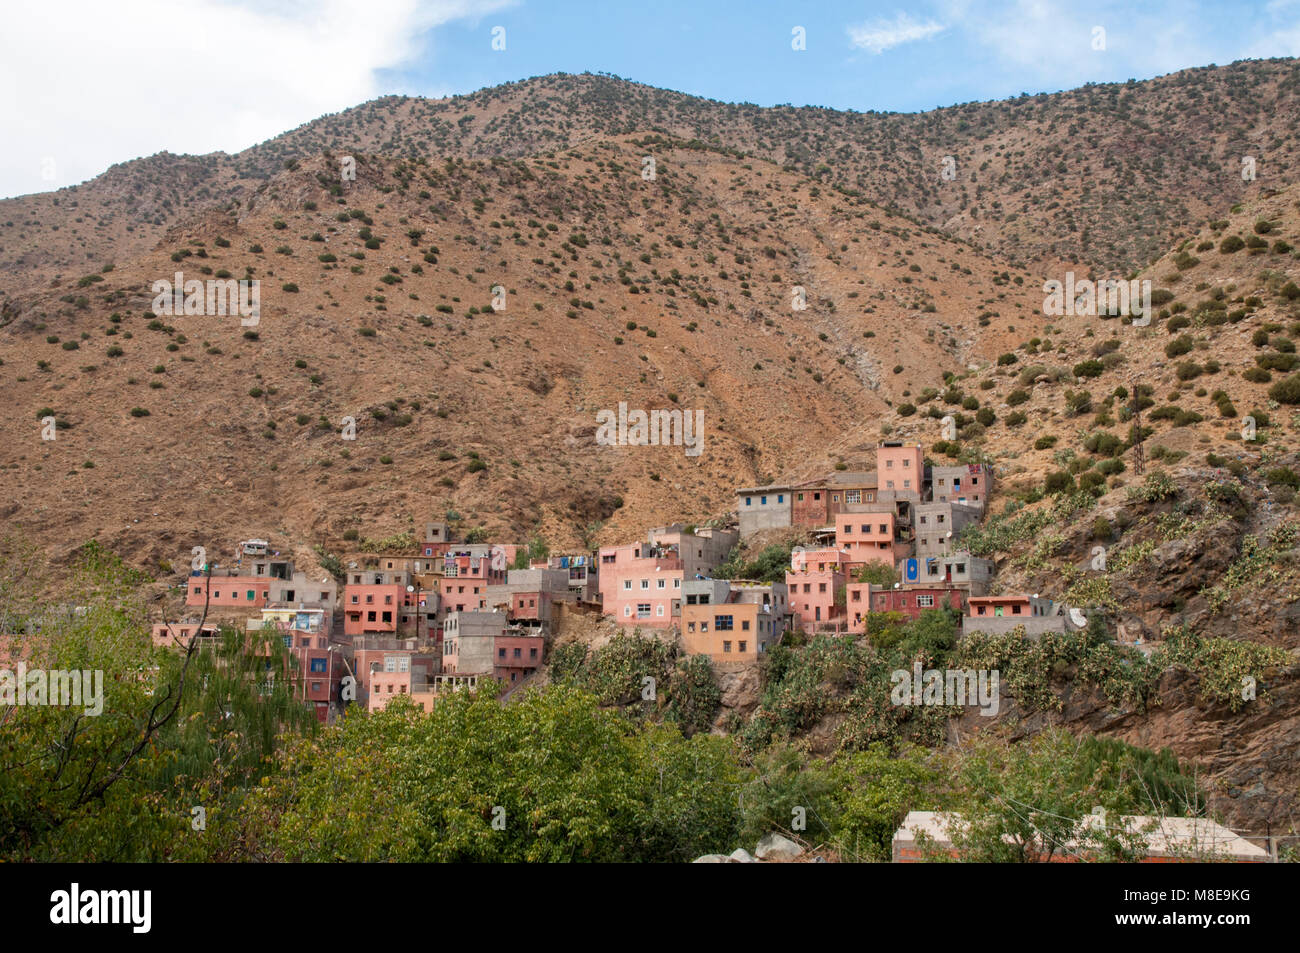 The village of Setti-Fatma nestled in the Atlas mountains in Morocco. Stock Photo